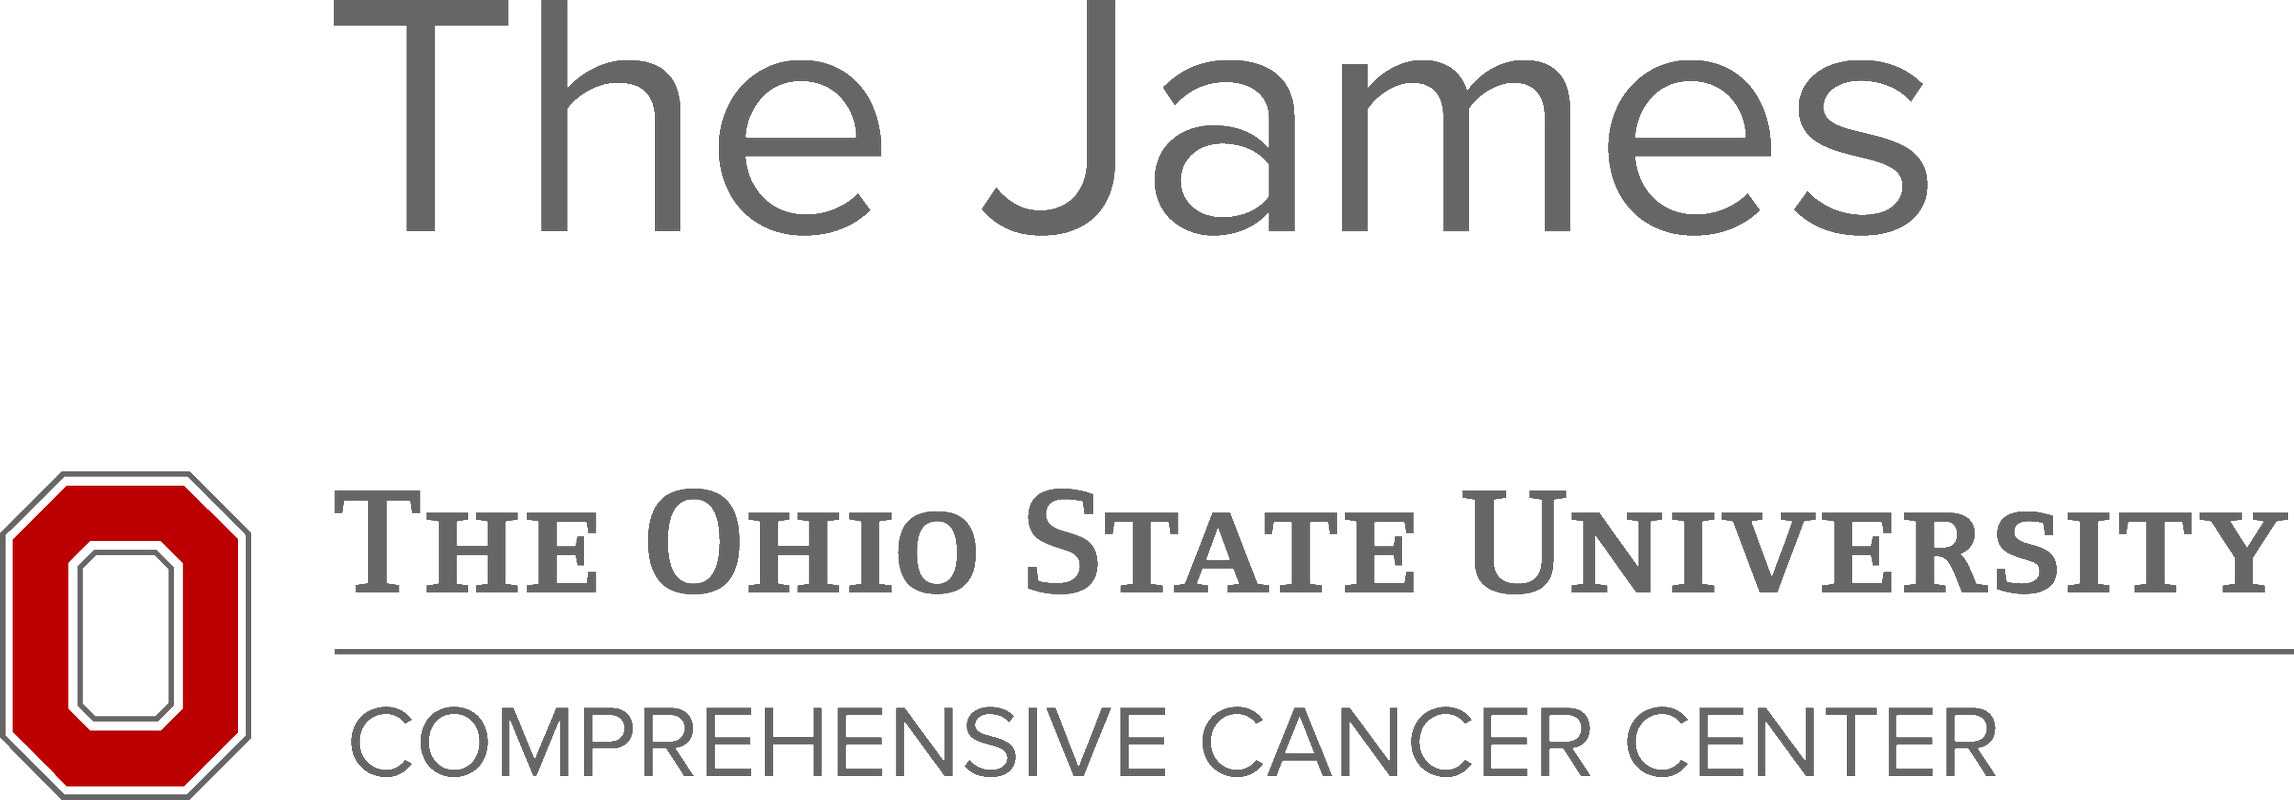 Ohio-State-James-Cancer-Hospital-3.png